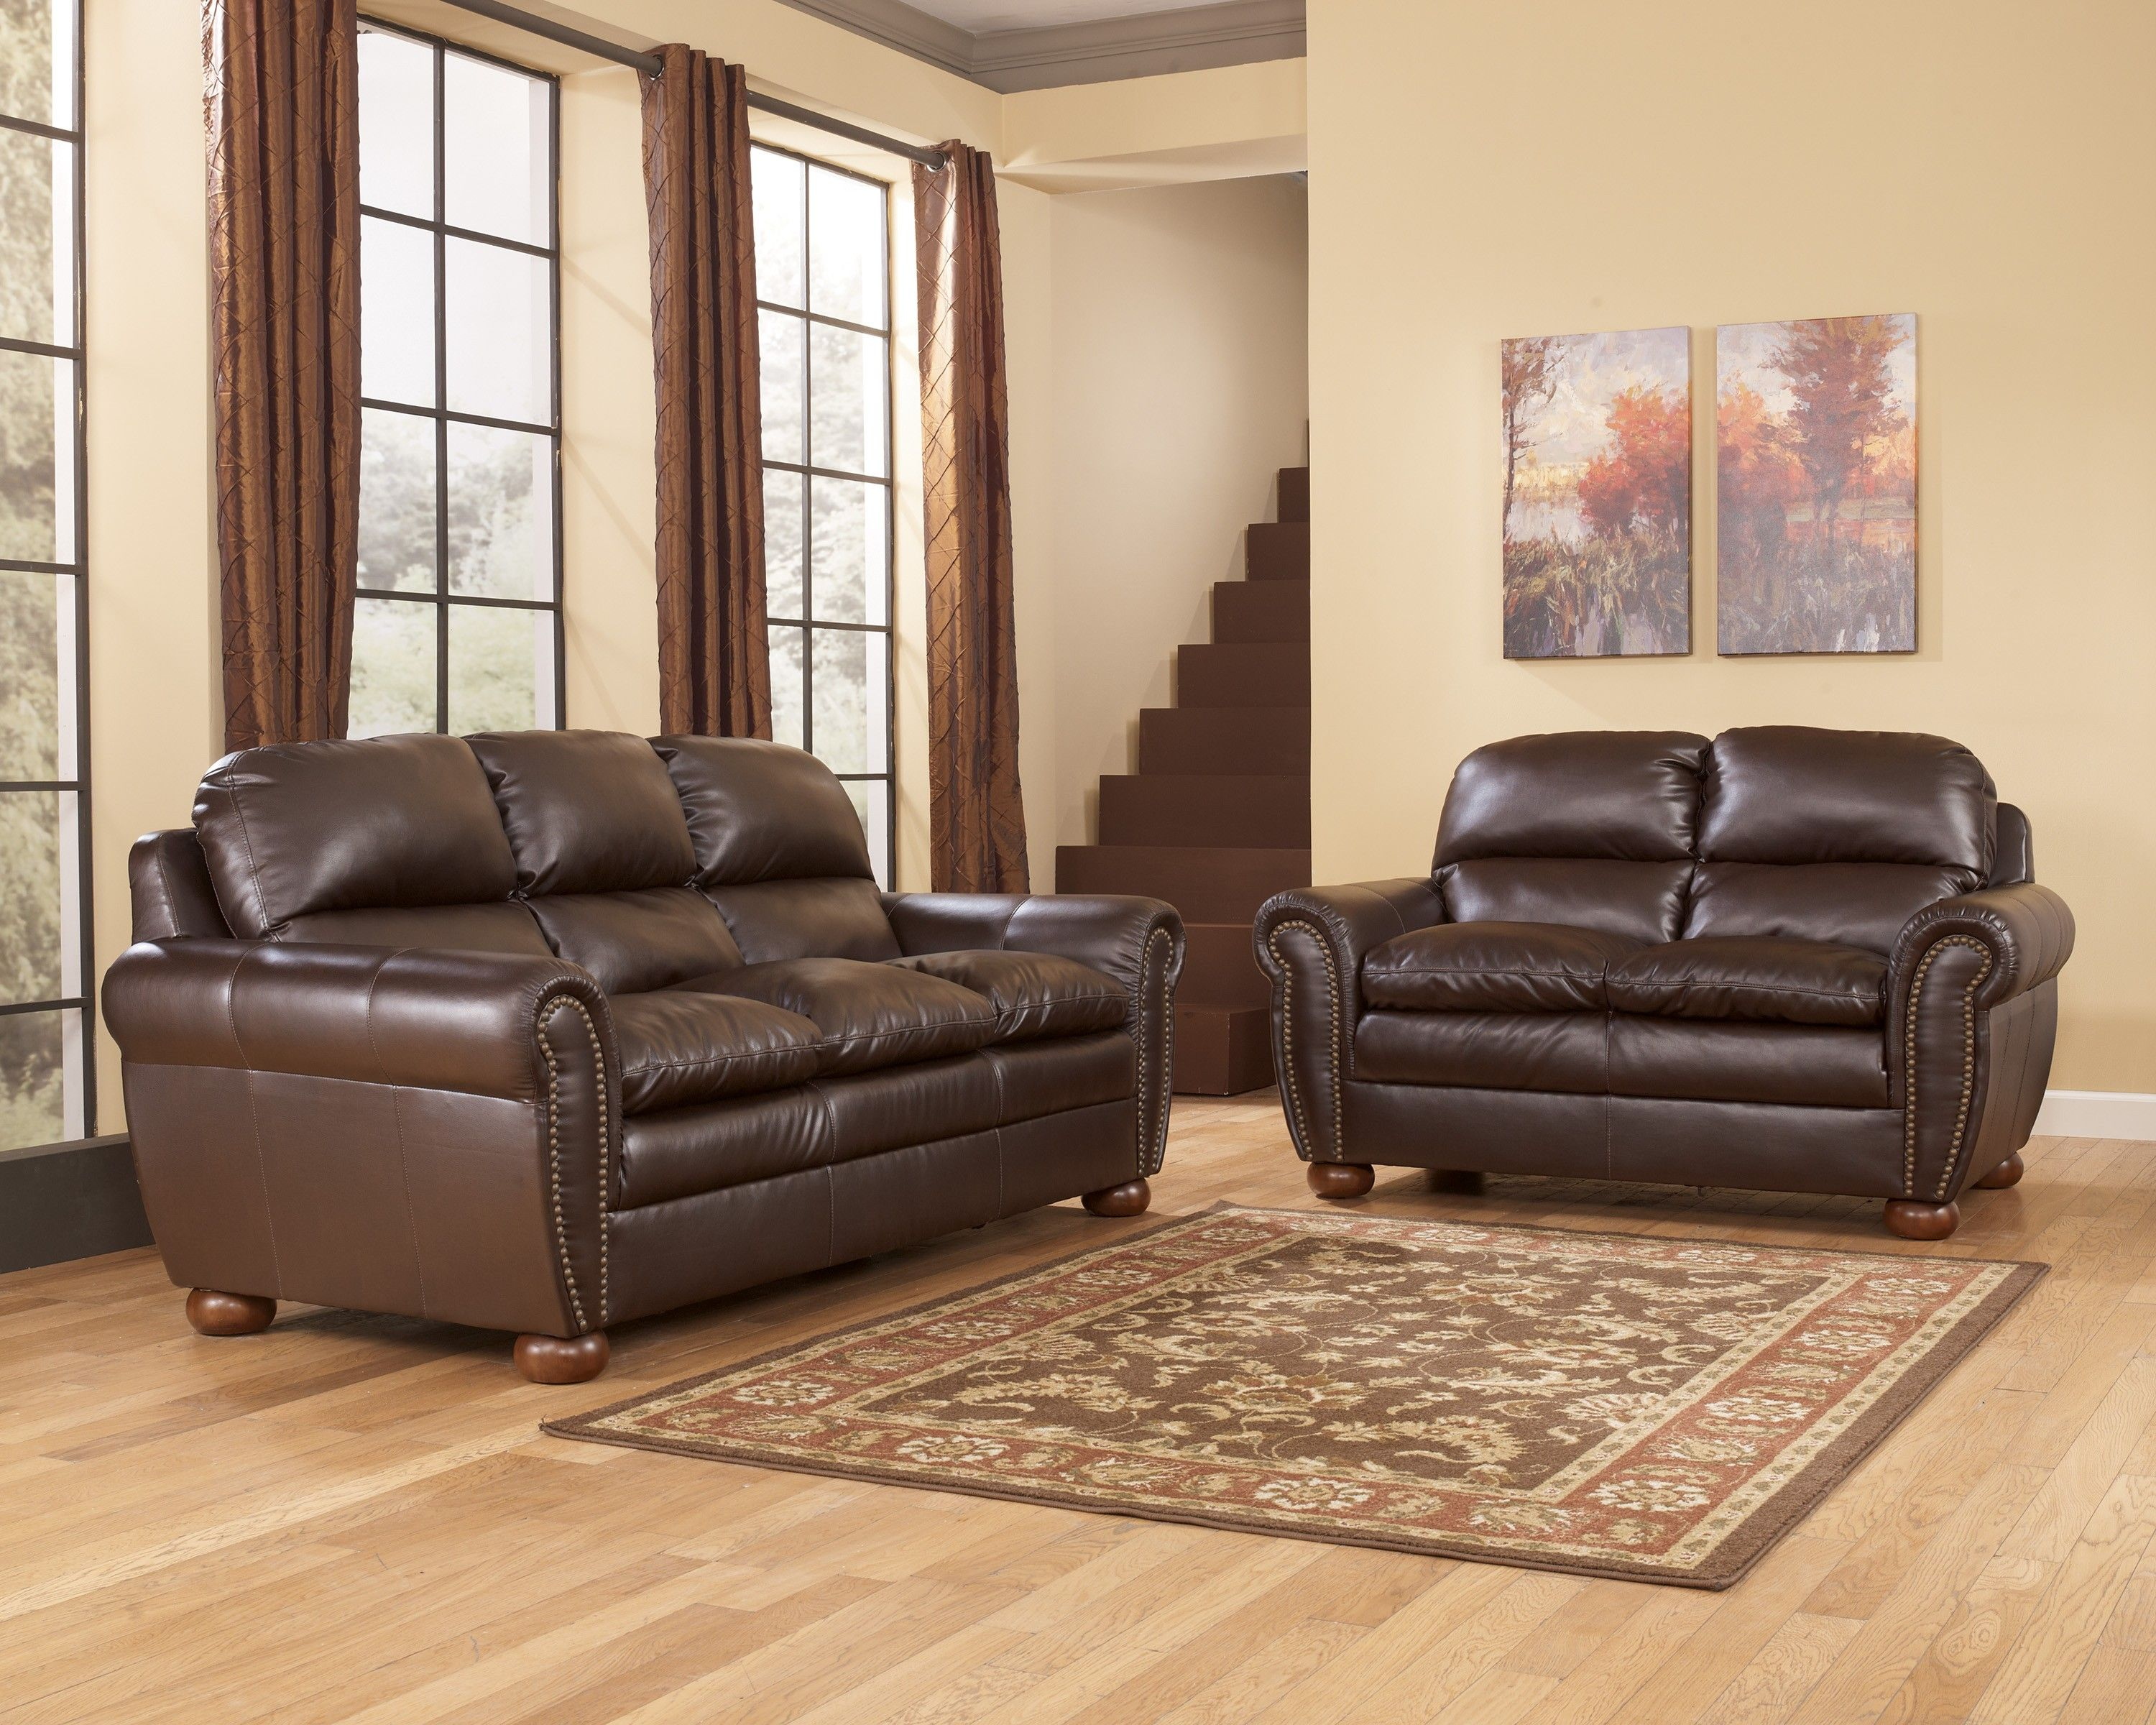 Beau Excellent Ashley Furniture Sofas For Home Design Ideas With Ashley  Furniture Sofas